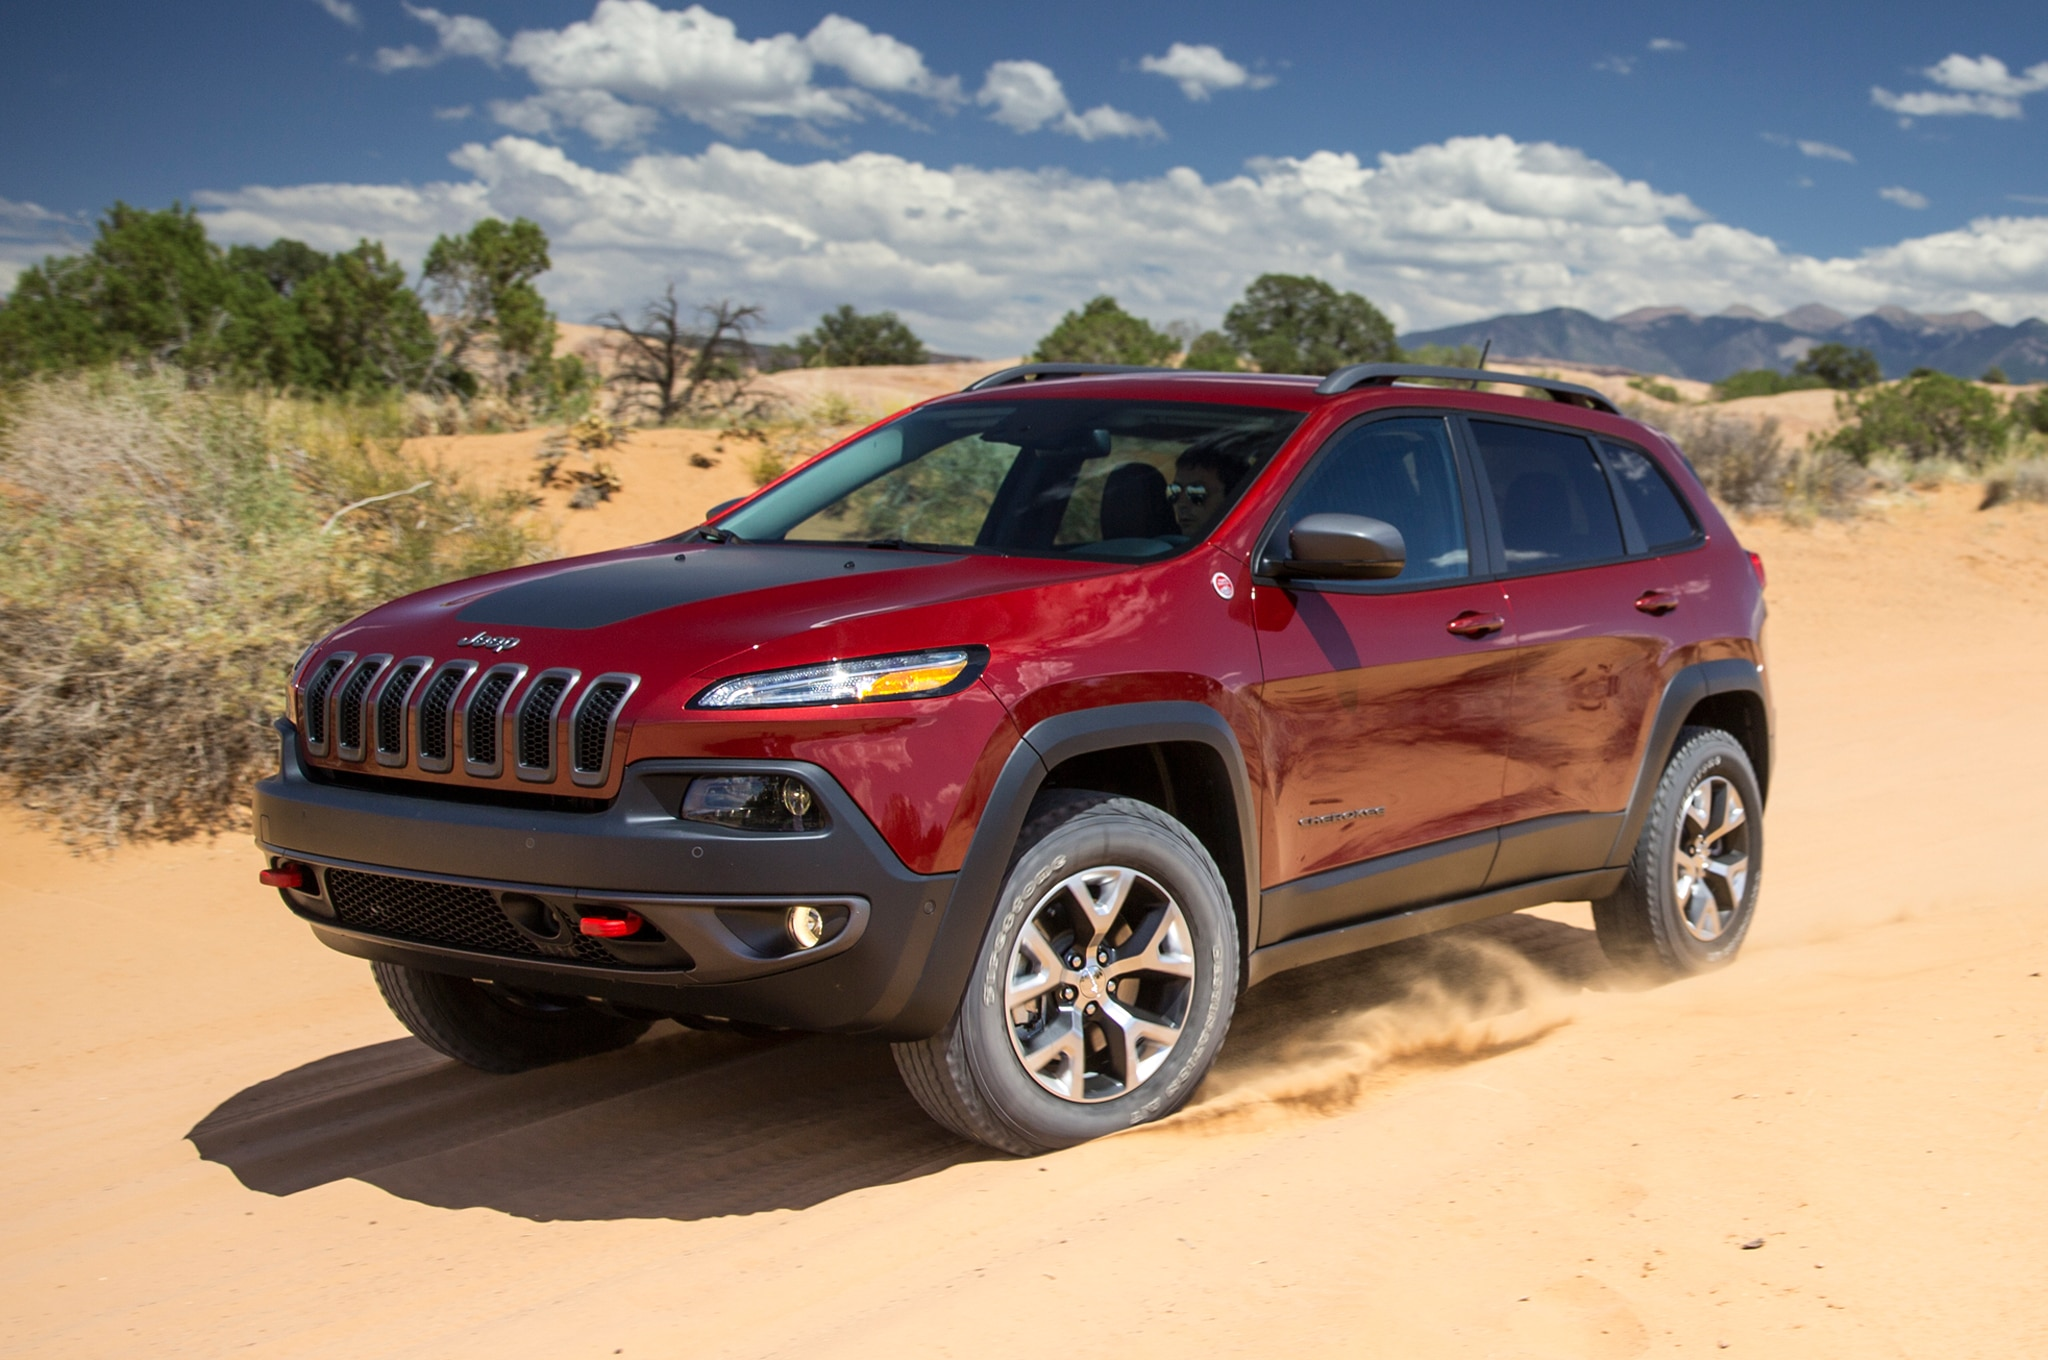 Jeep Cherokee Trailhawk Front View In Motion